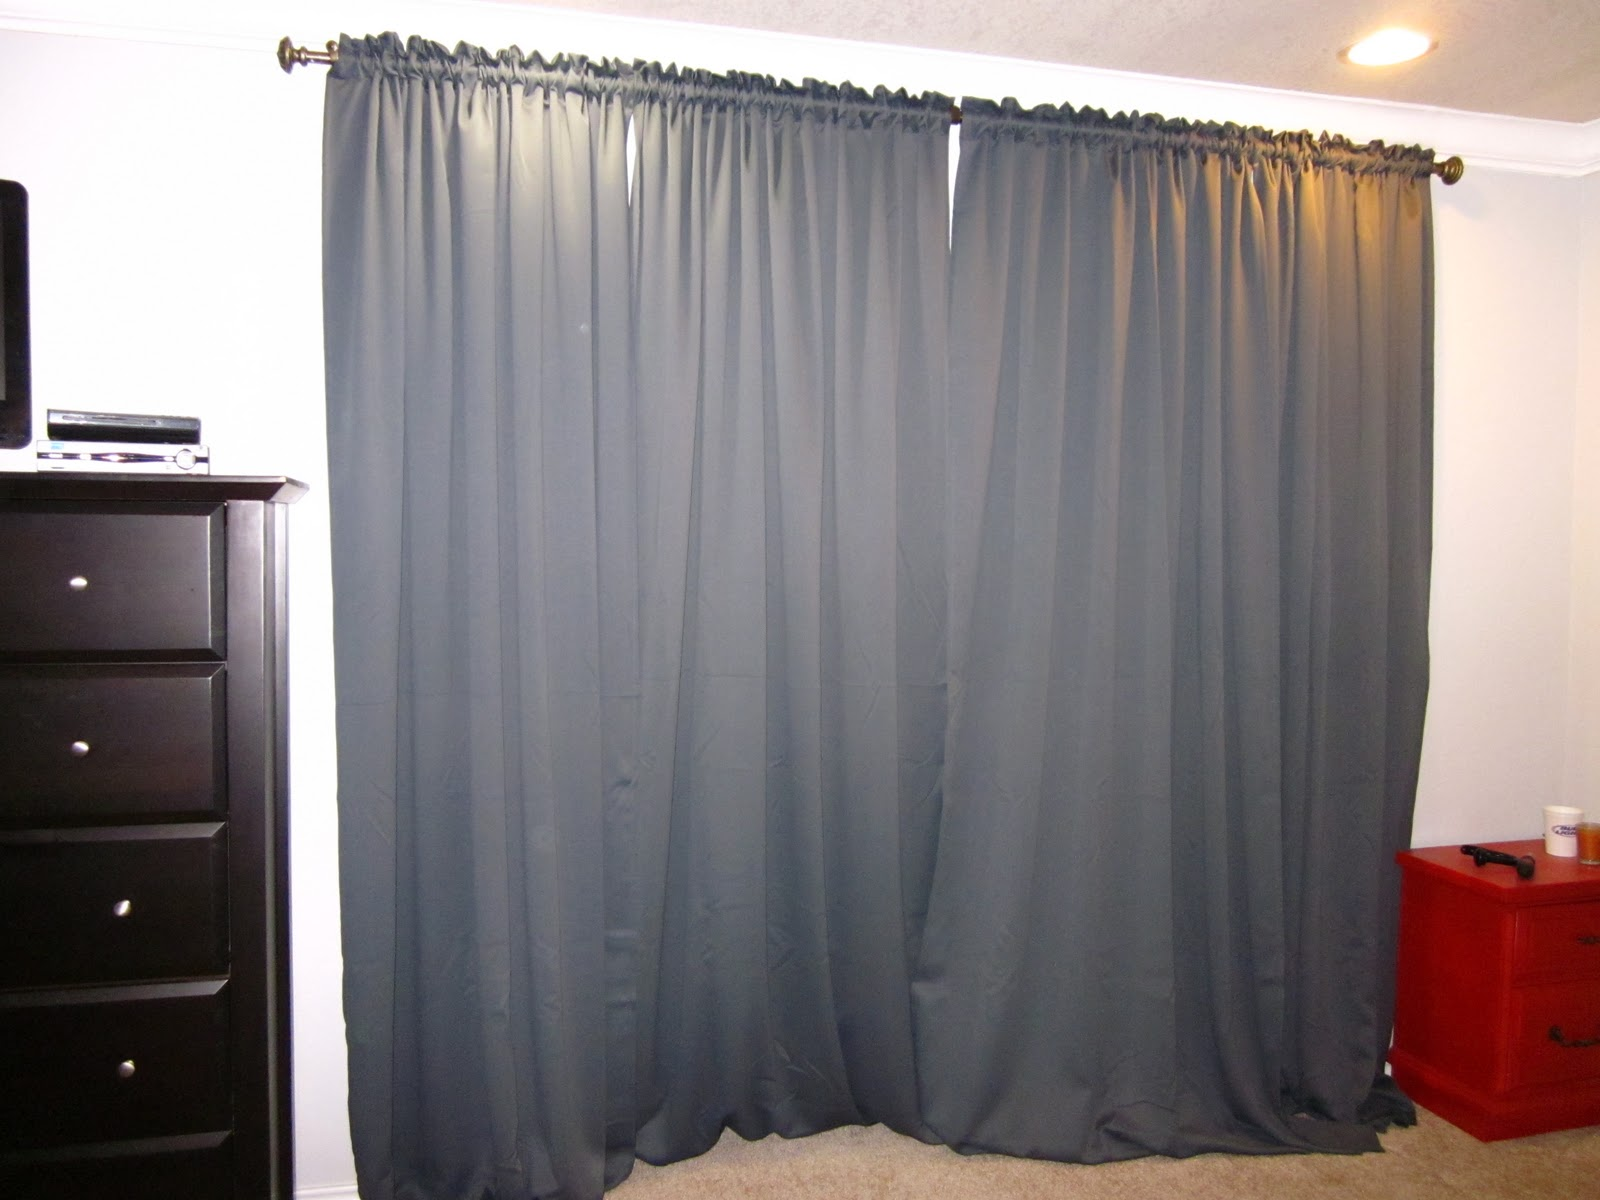 my new curtains in the master bedroom have been doing a great job of